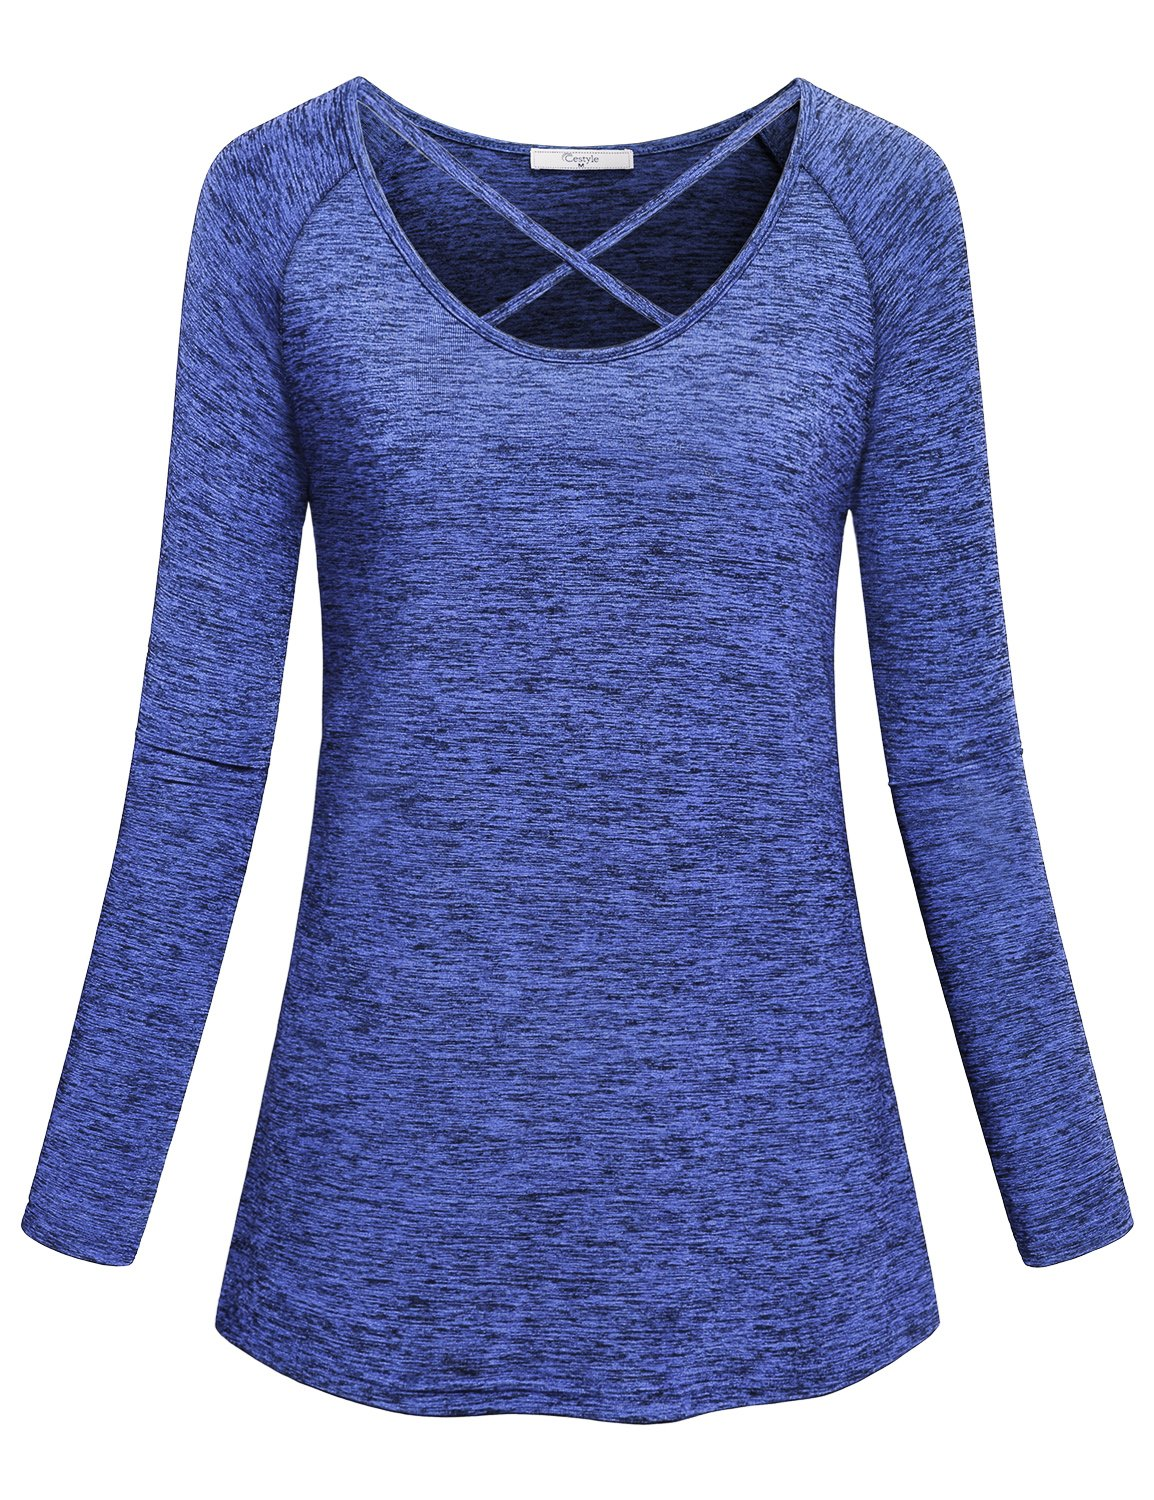 Cestyle Wicking Shirt Women,Ladies Cruise Crew Neck Long Sleeve Criss Cross Tunic Tees Athletic Bodybuilding Heathered Moisture Wicking Tops Activewear Loose Fit Clothes Blue XX-Large